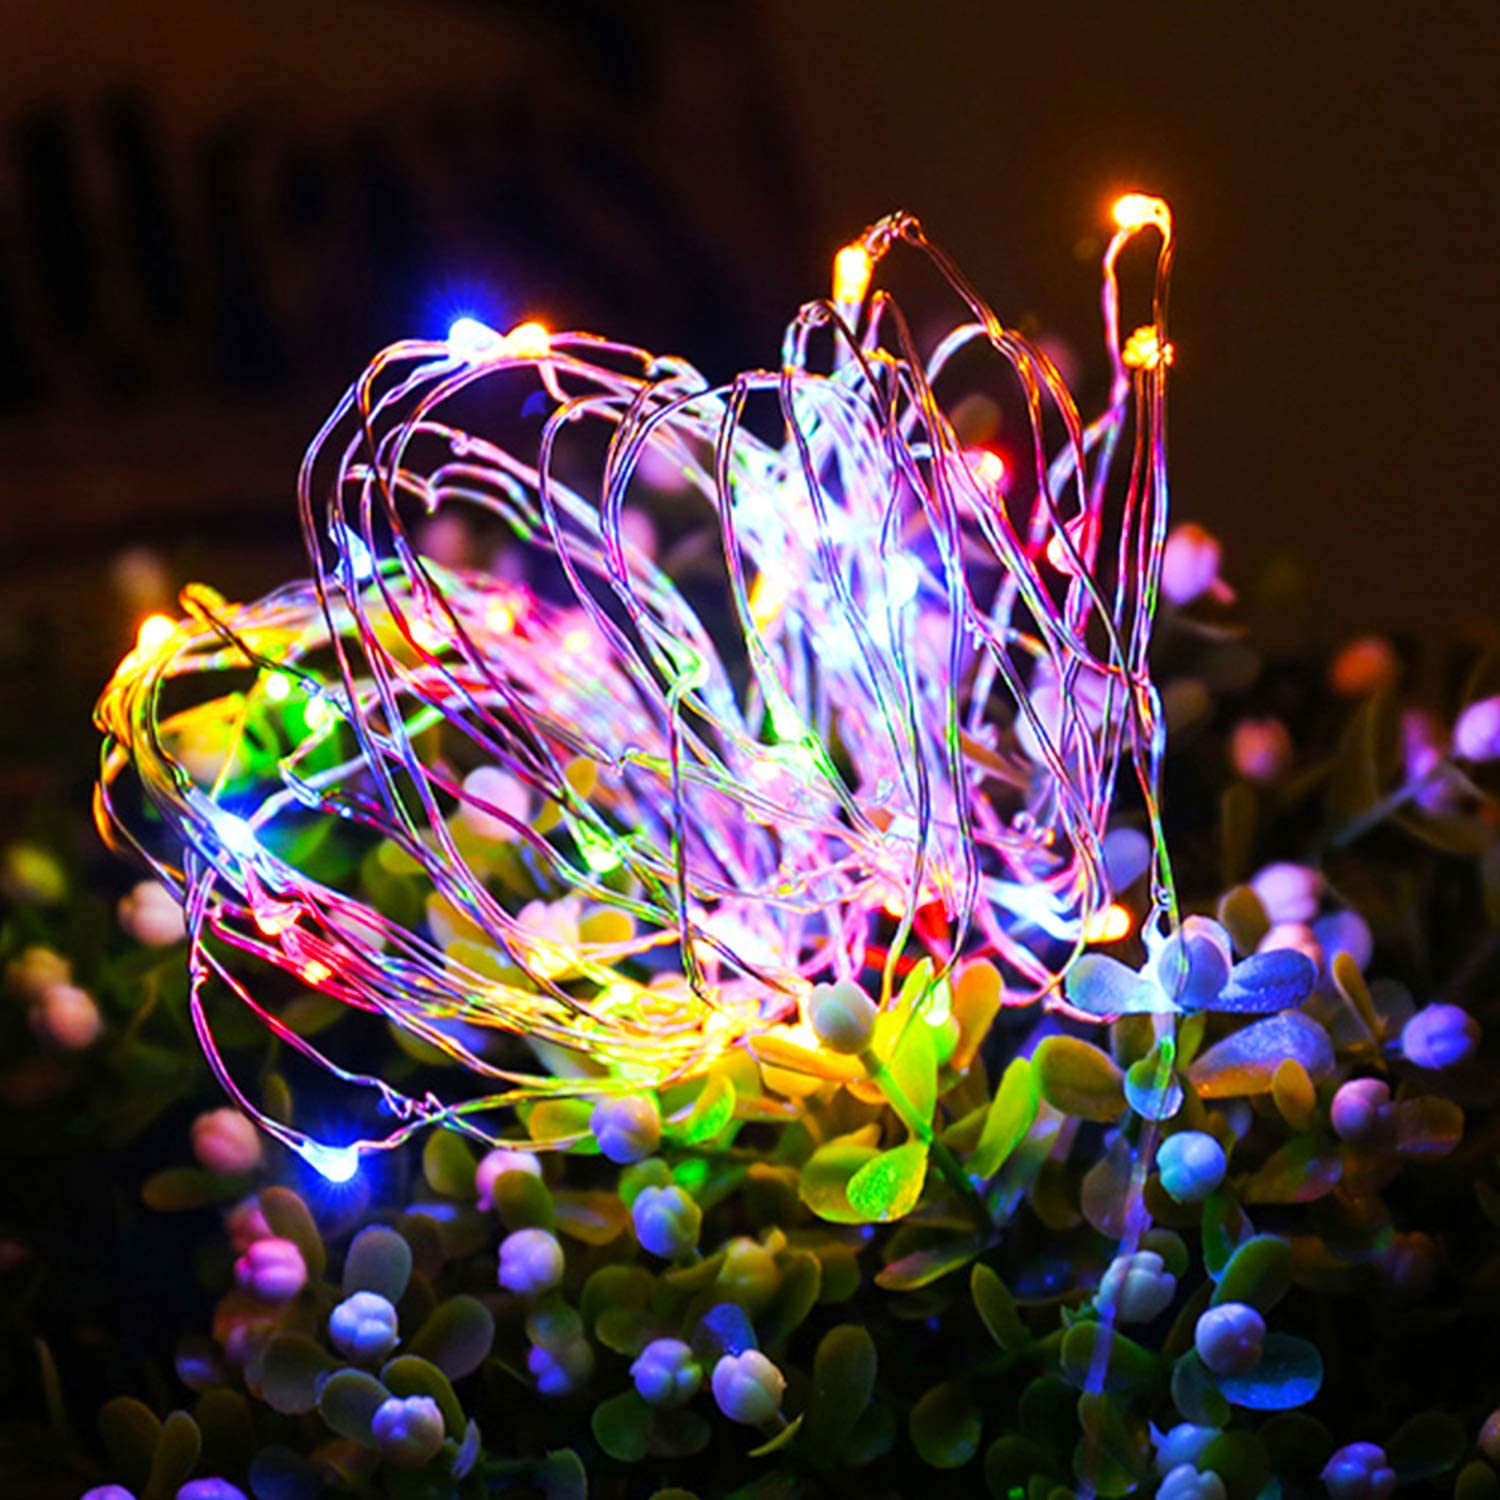 Hec779a55551c432d84beadf5da816202f - Led Outdoor Solar String Lights Fairy Holiday Christmas For Christmas, Lawn, Garden, Wedding, Party and Holiday(1/2Pack)